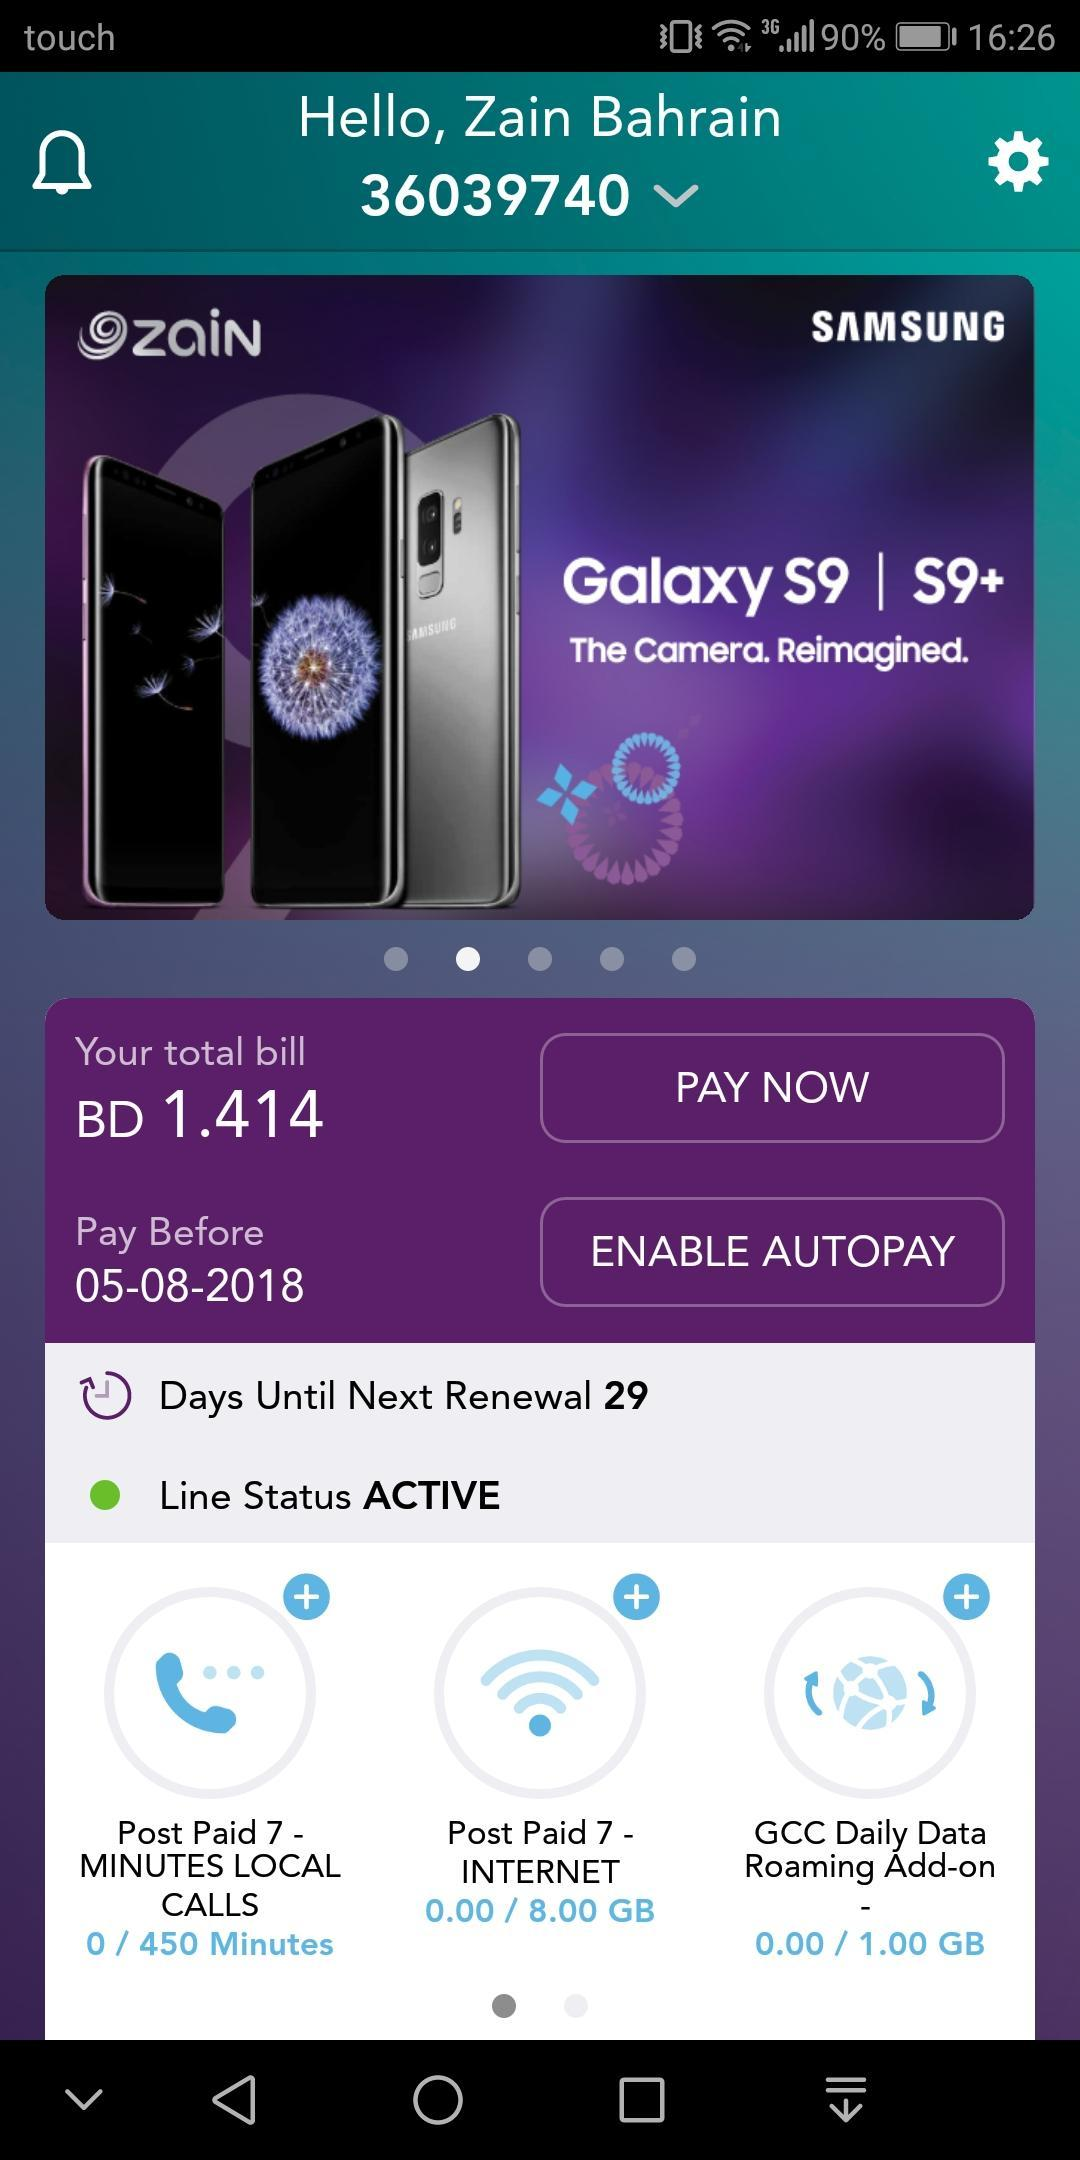 ZAIN Bahrain for Android - APK Download